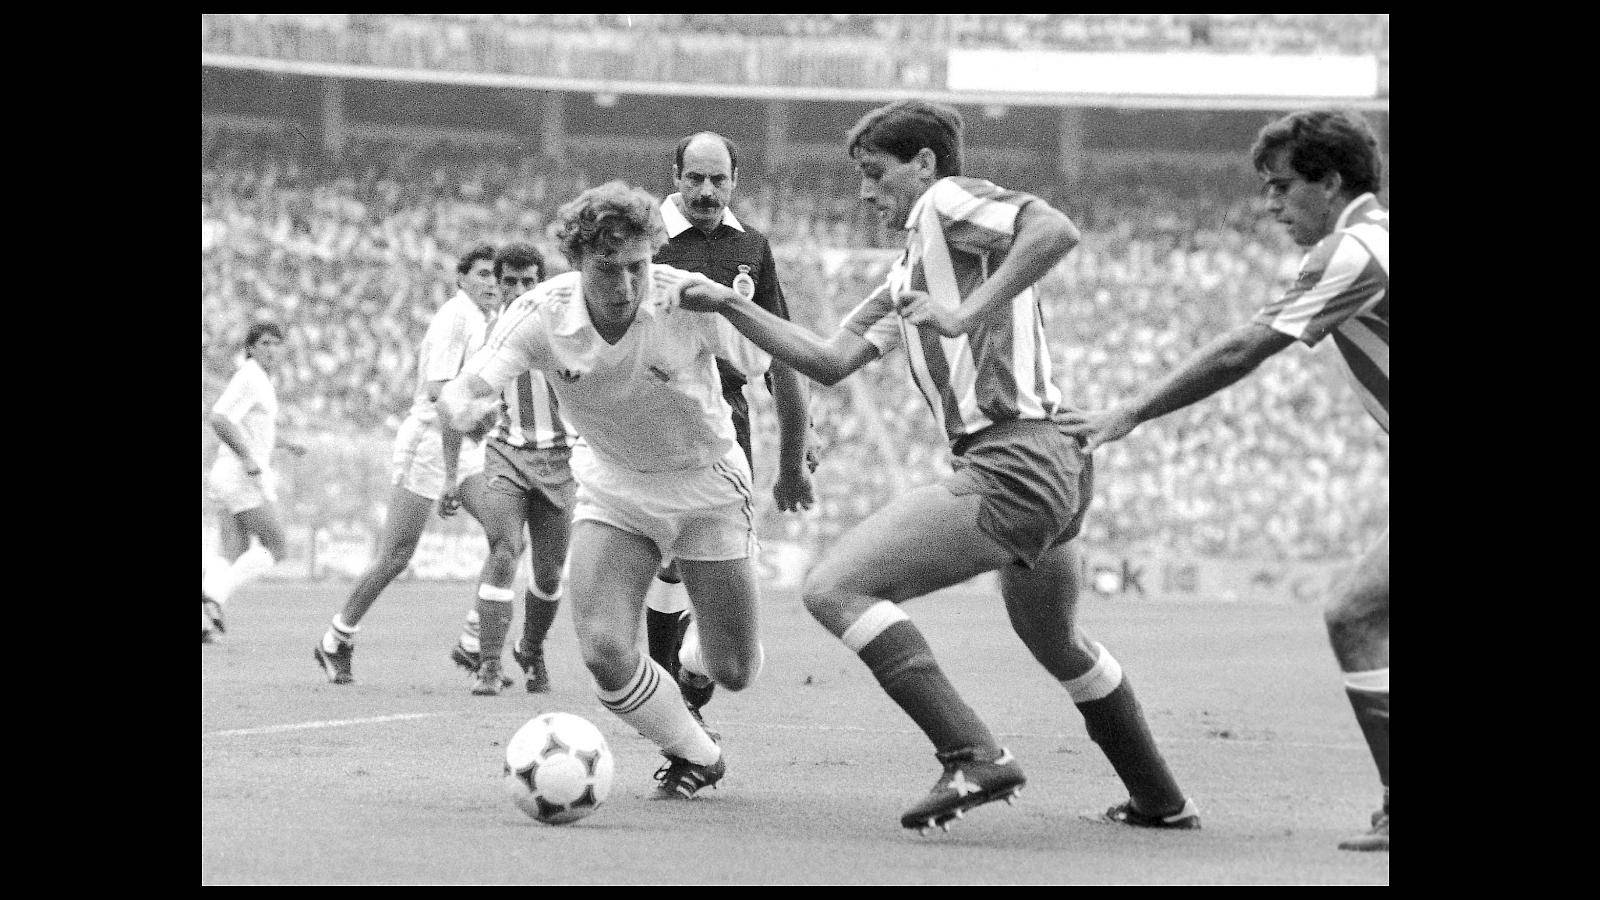 1985-atletico-real-madrid-derbi--1600x900